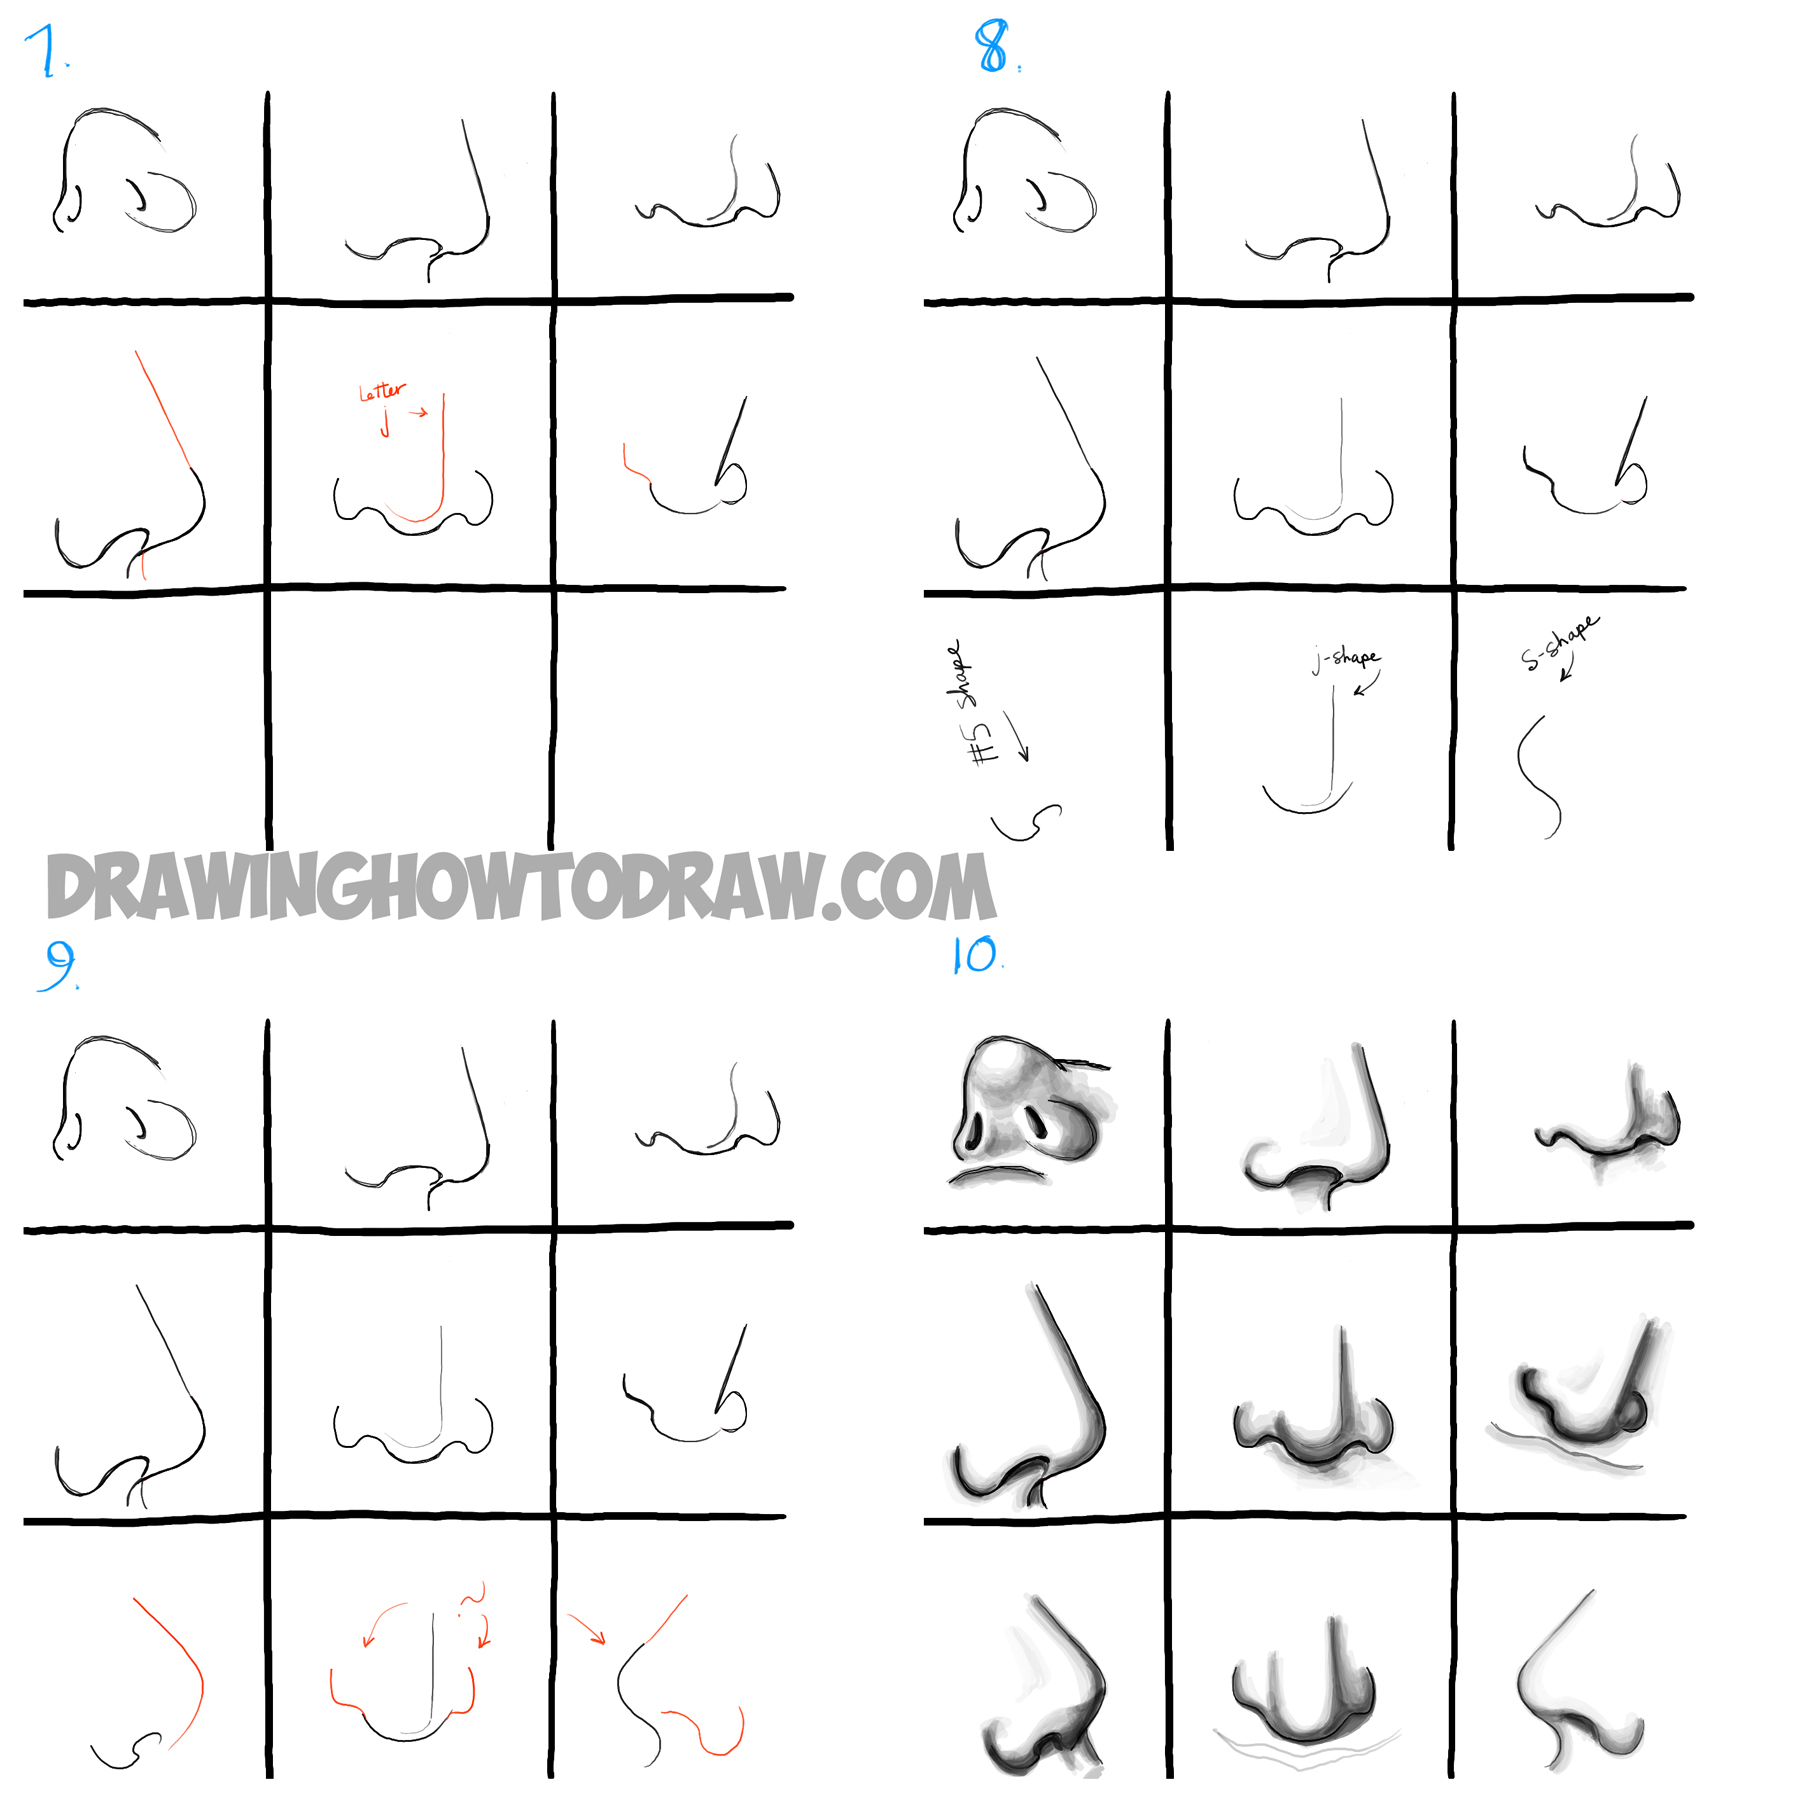 howtodraw-2-noses-stepbystep